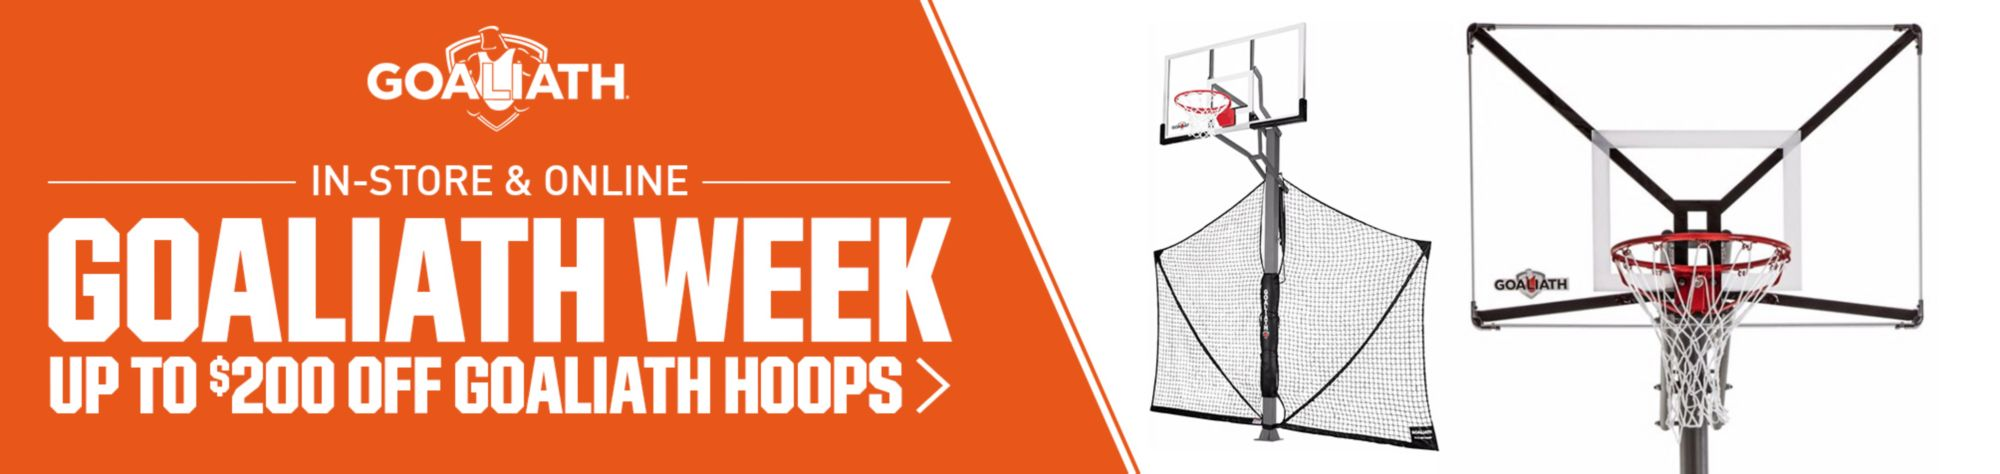 In-Store and Online - Goaliath Week - Up to $200 off Goaliath Hoops